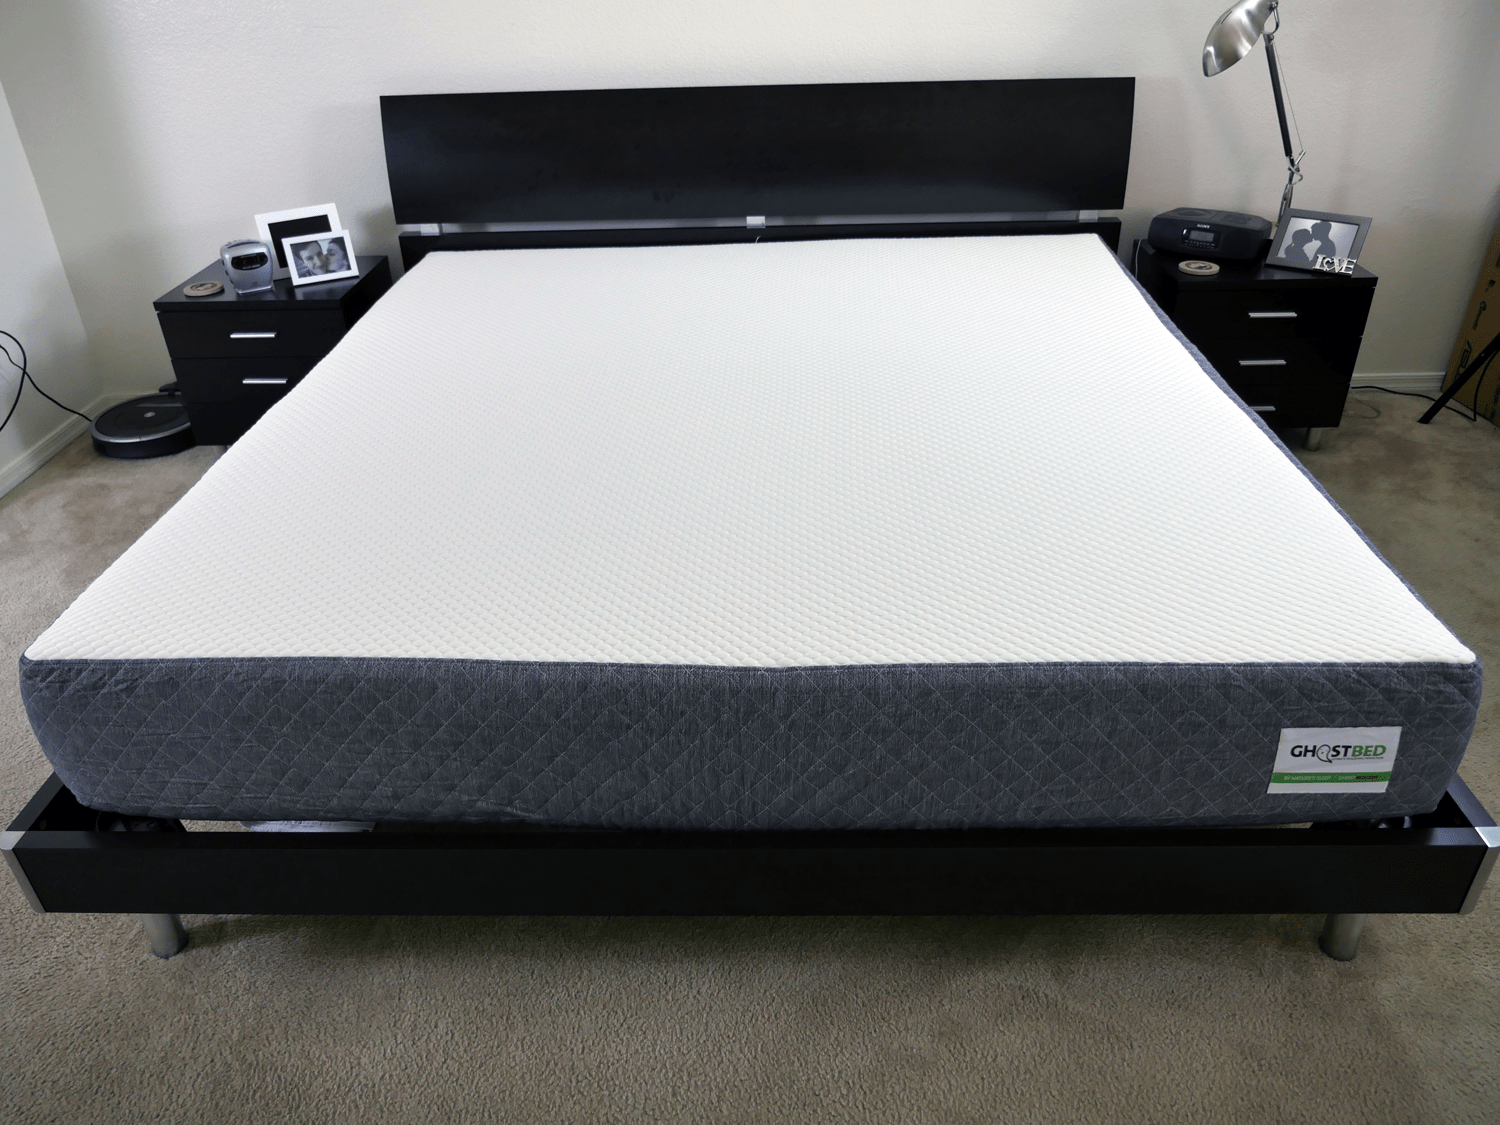 Ghostbed mattress review sleepopolis for Brooklyn bedding vs tempurpedic